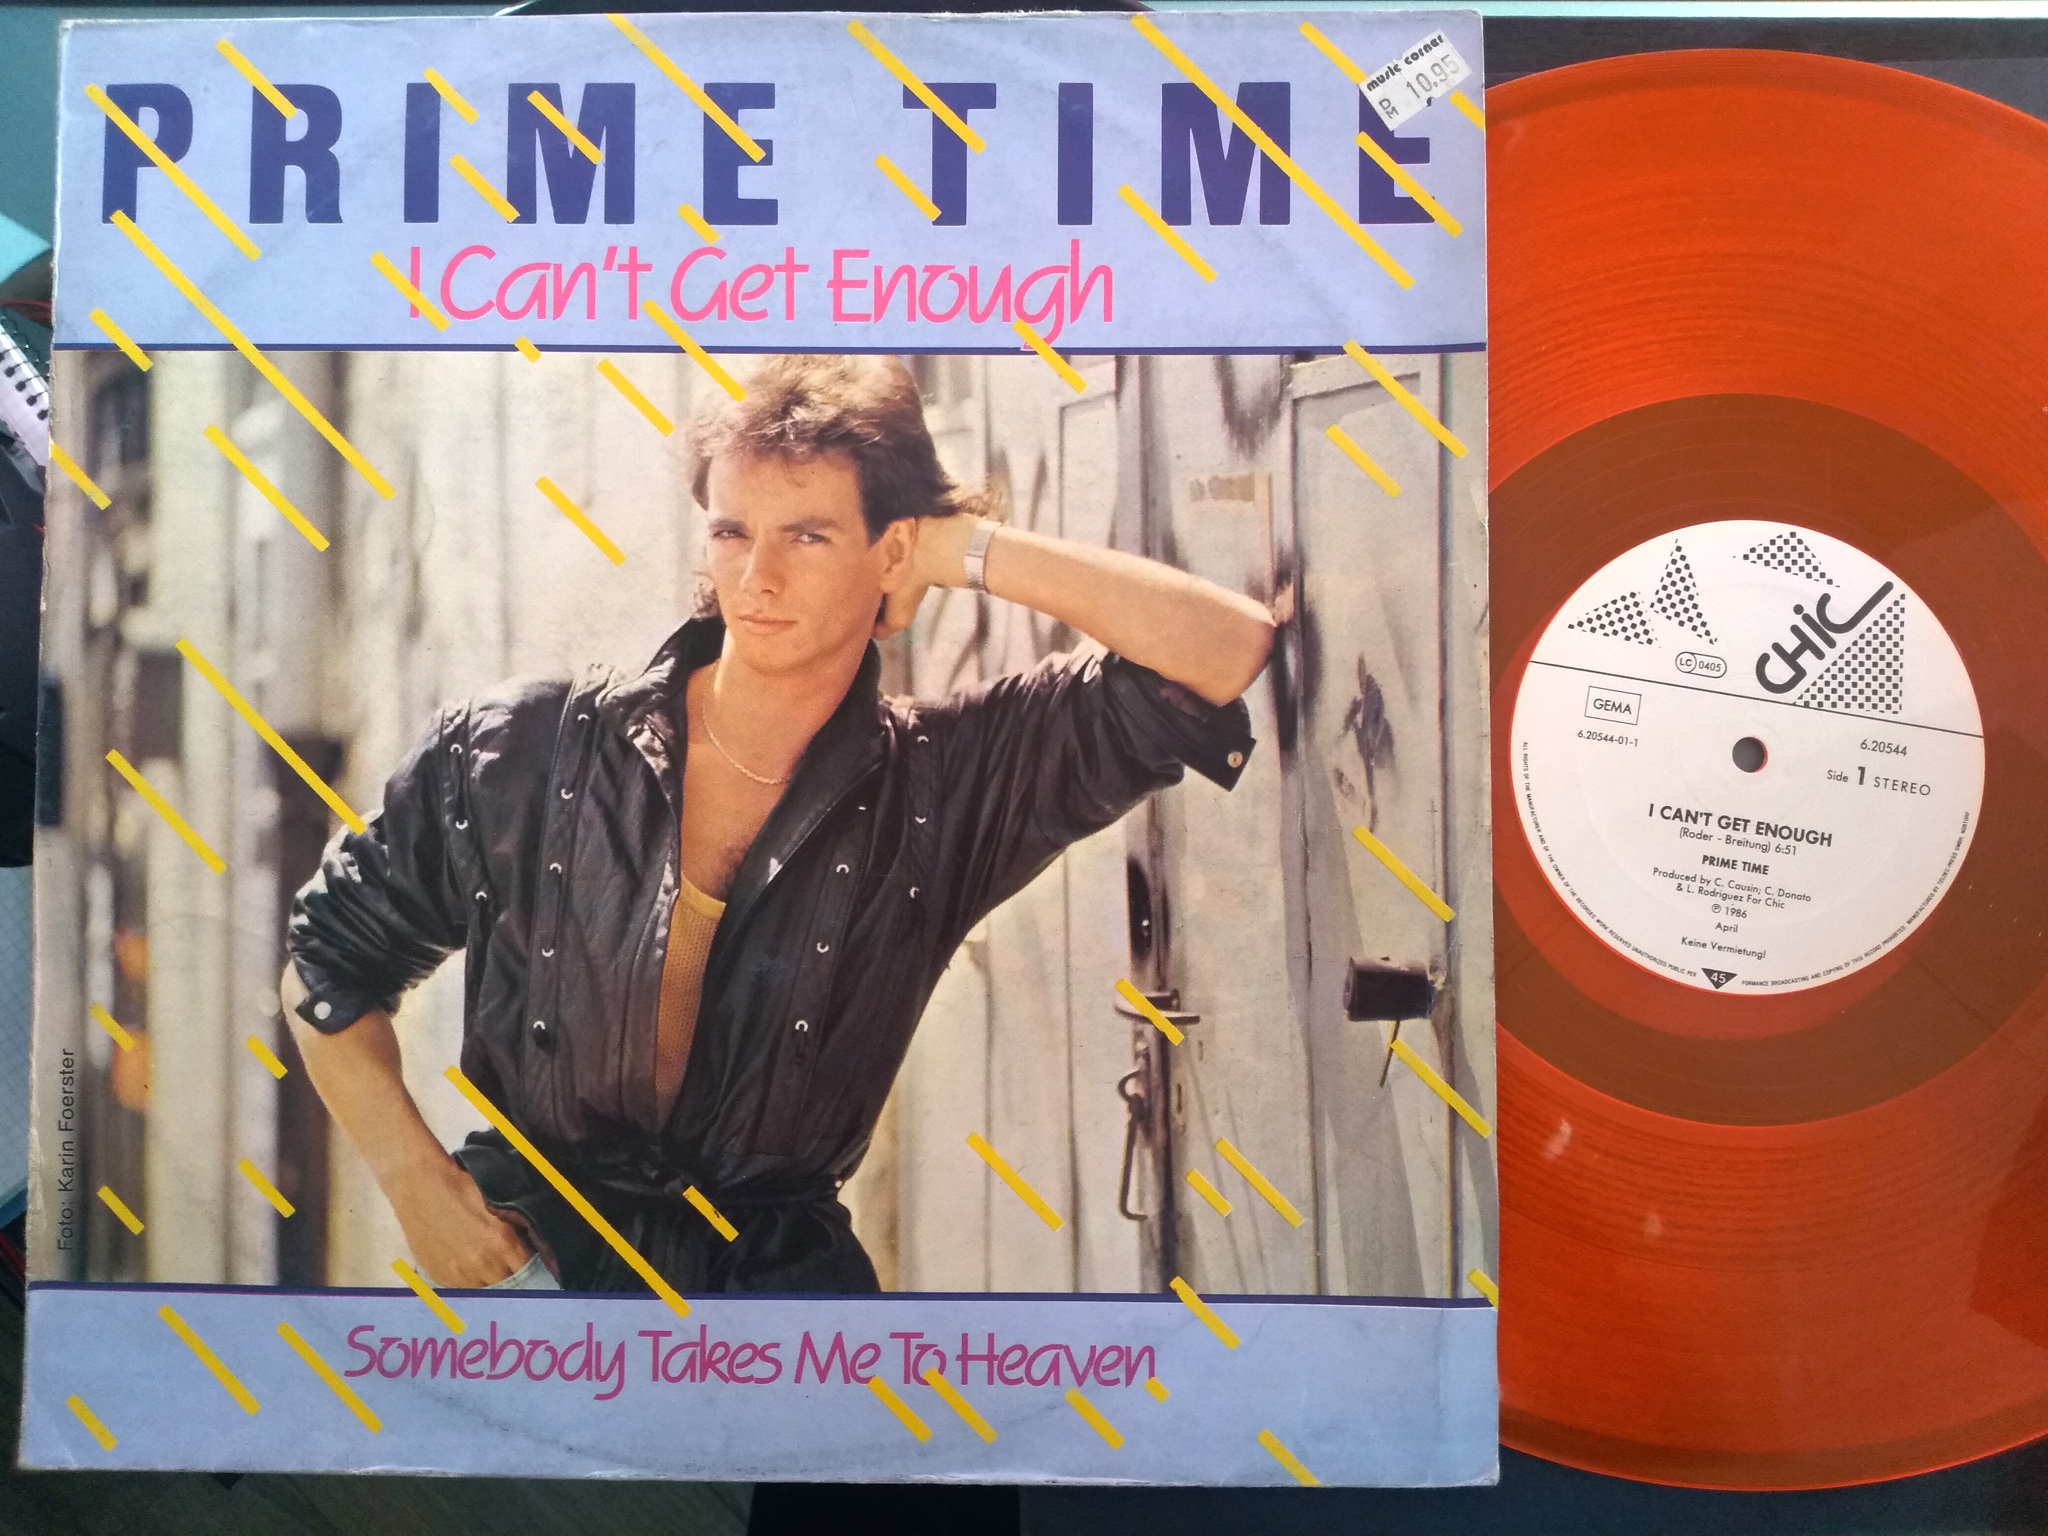 Prime Time - I Can't Get Enough